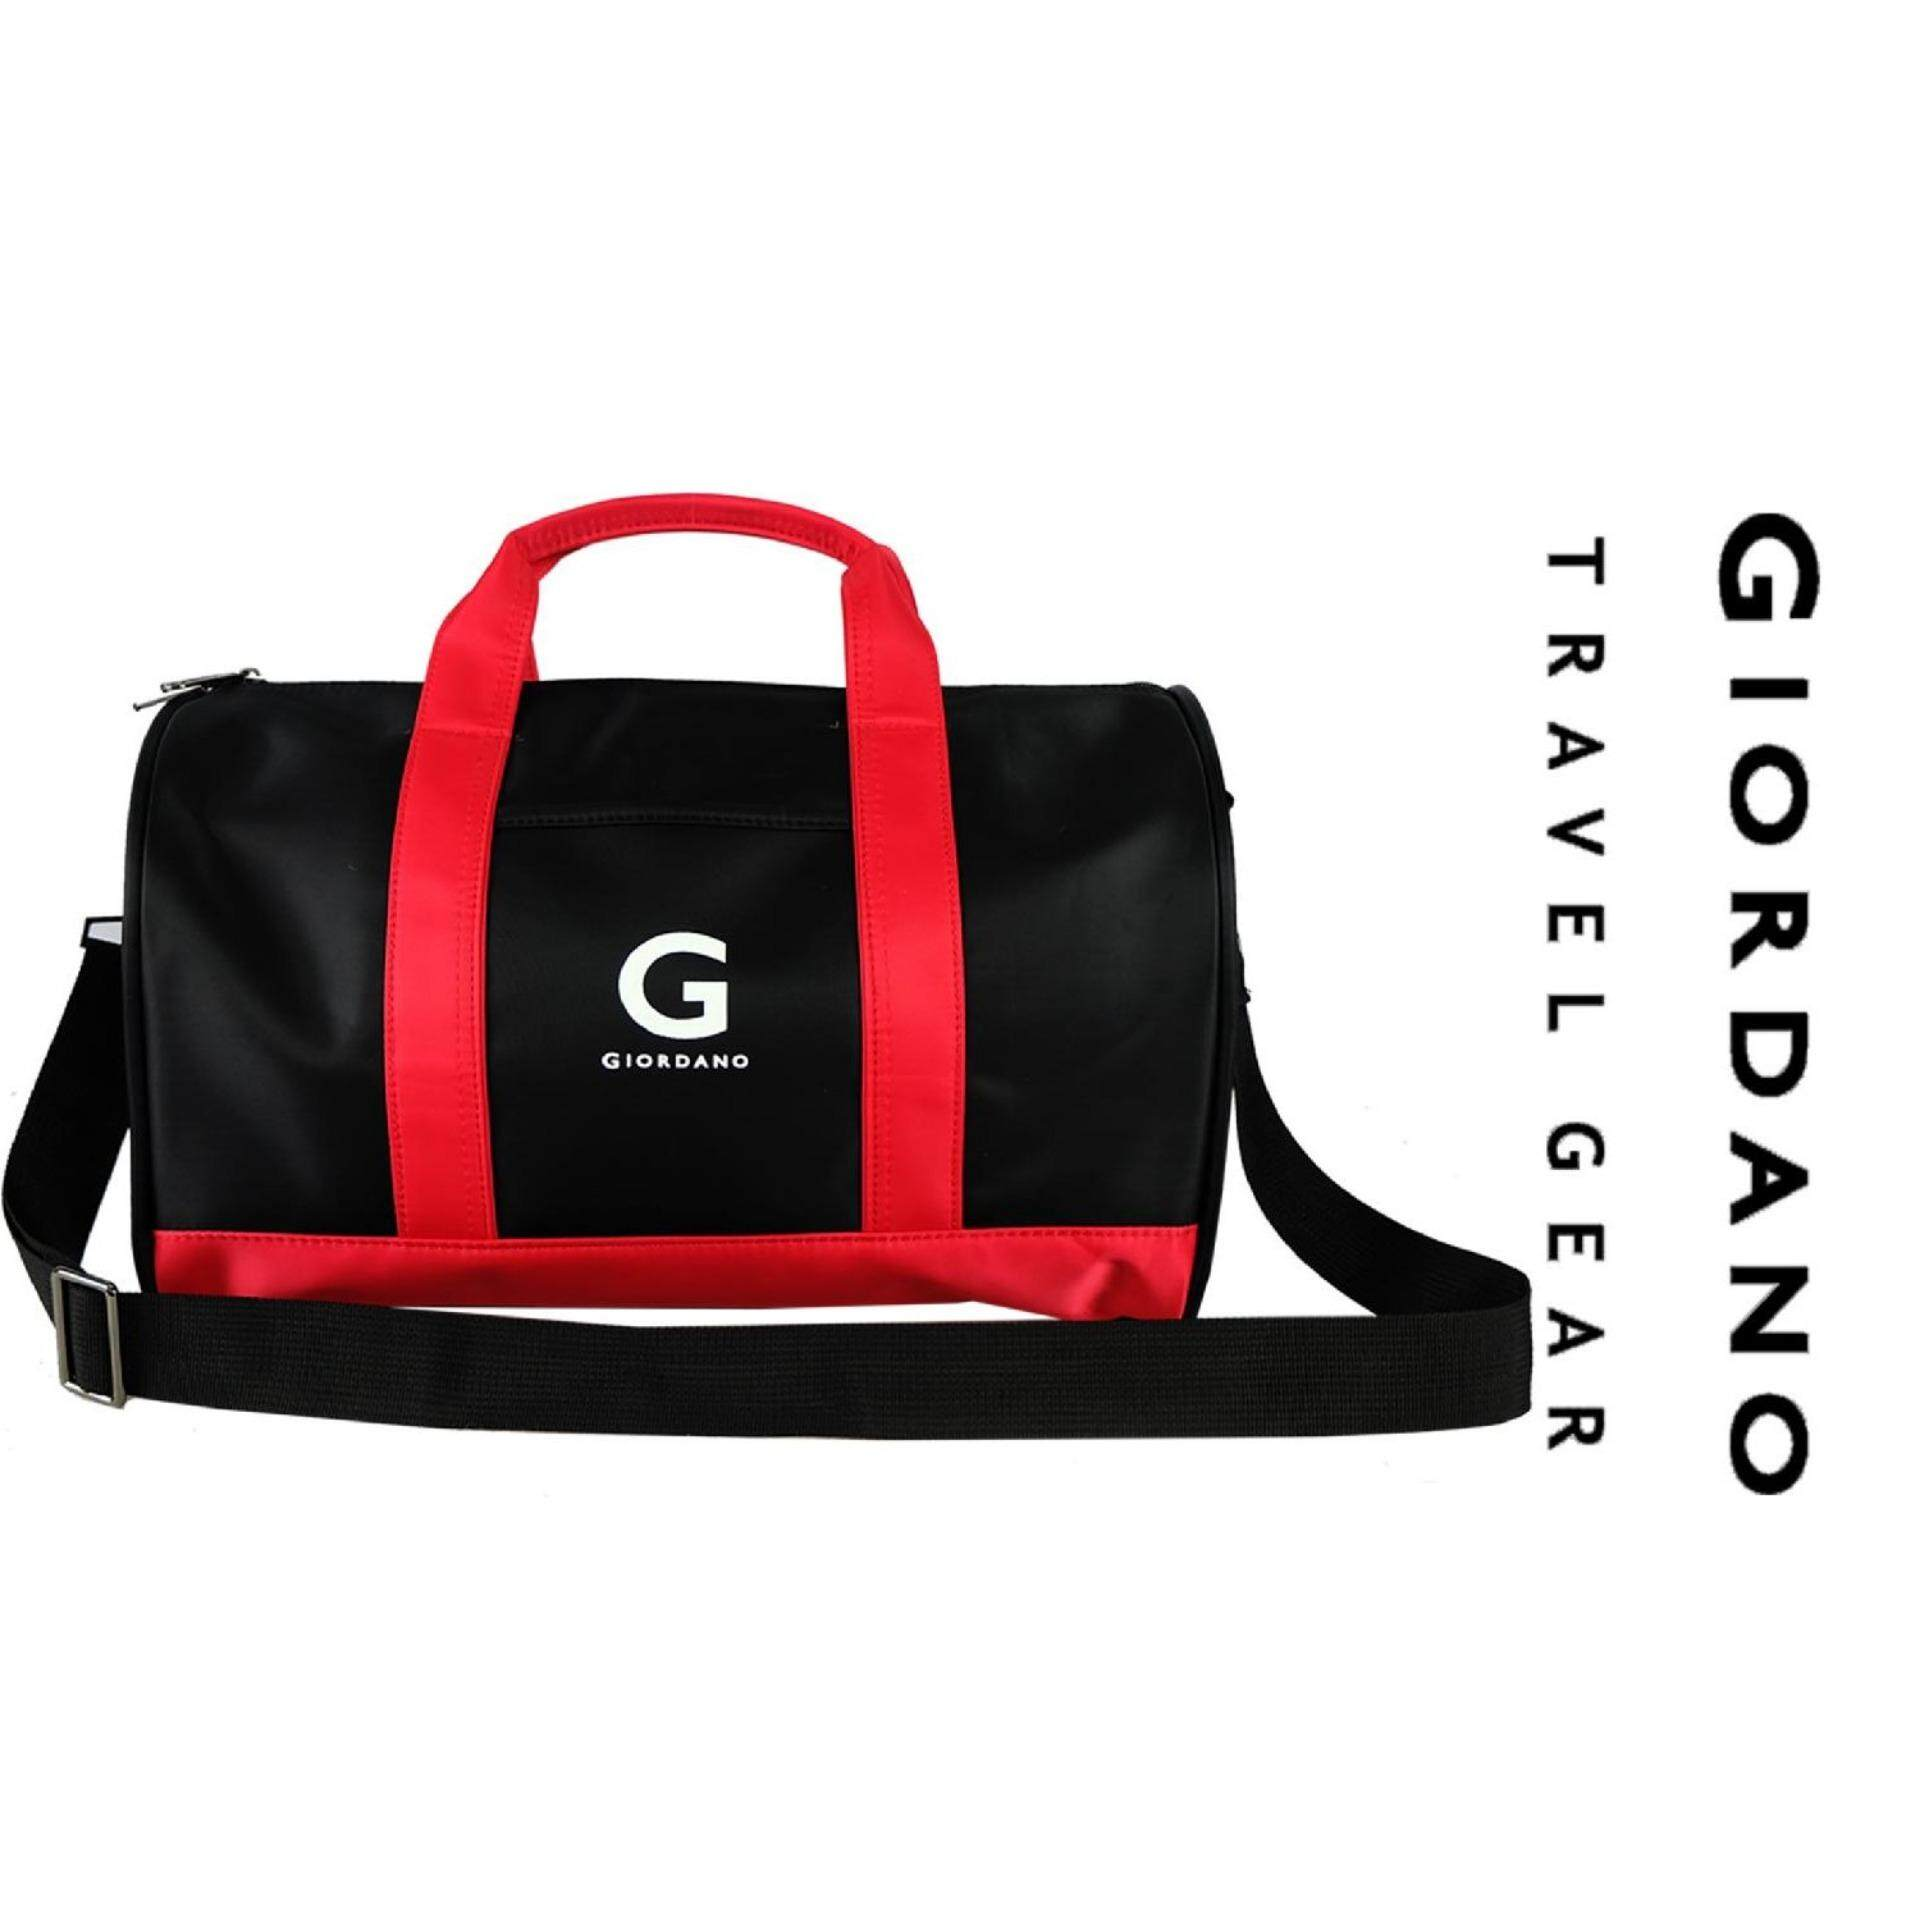 "Giordano 15"" Stylish Travel Gear GT9609- Black/Red"